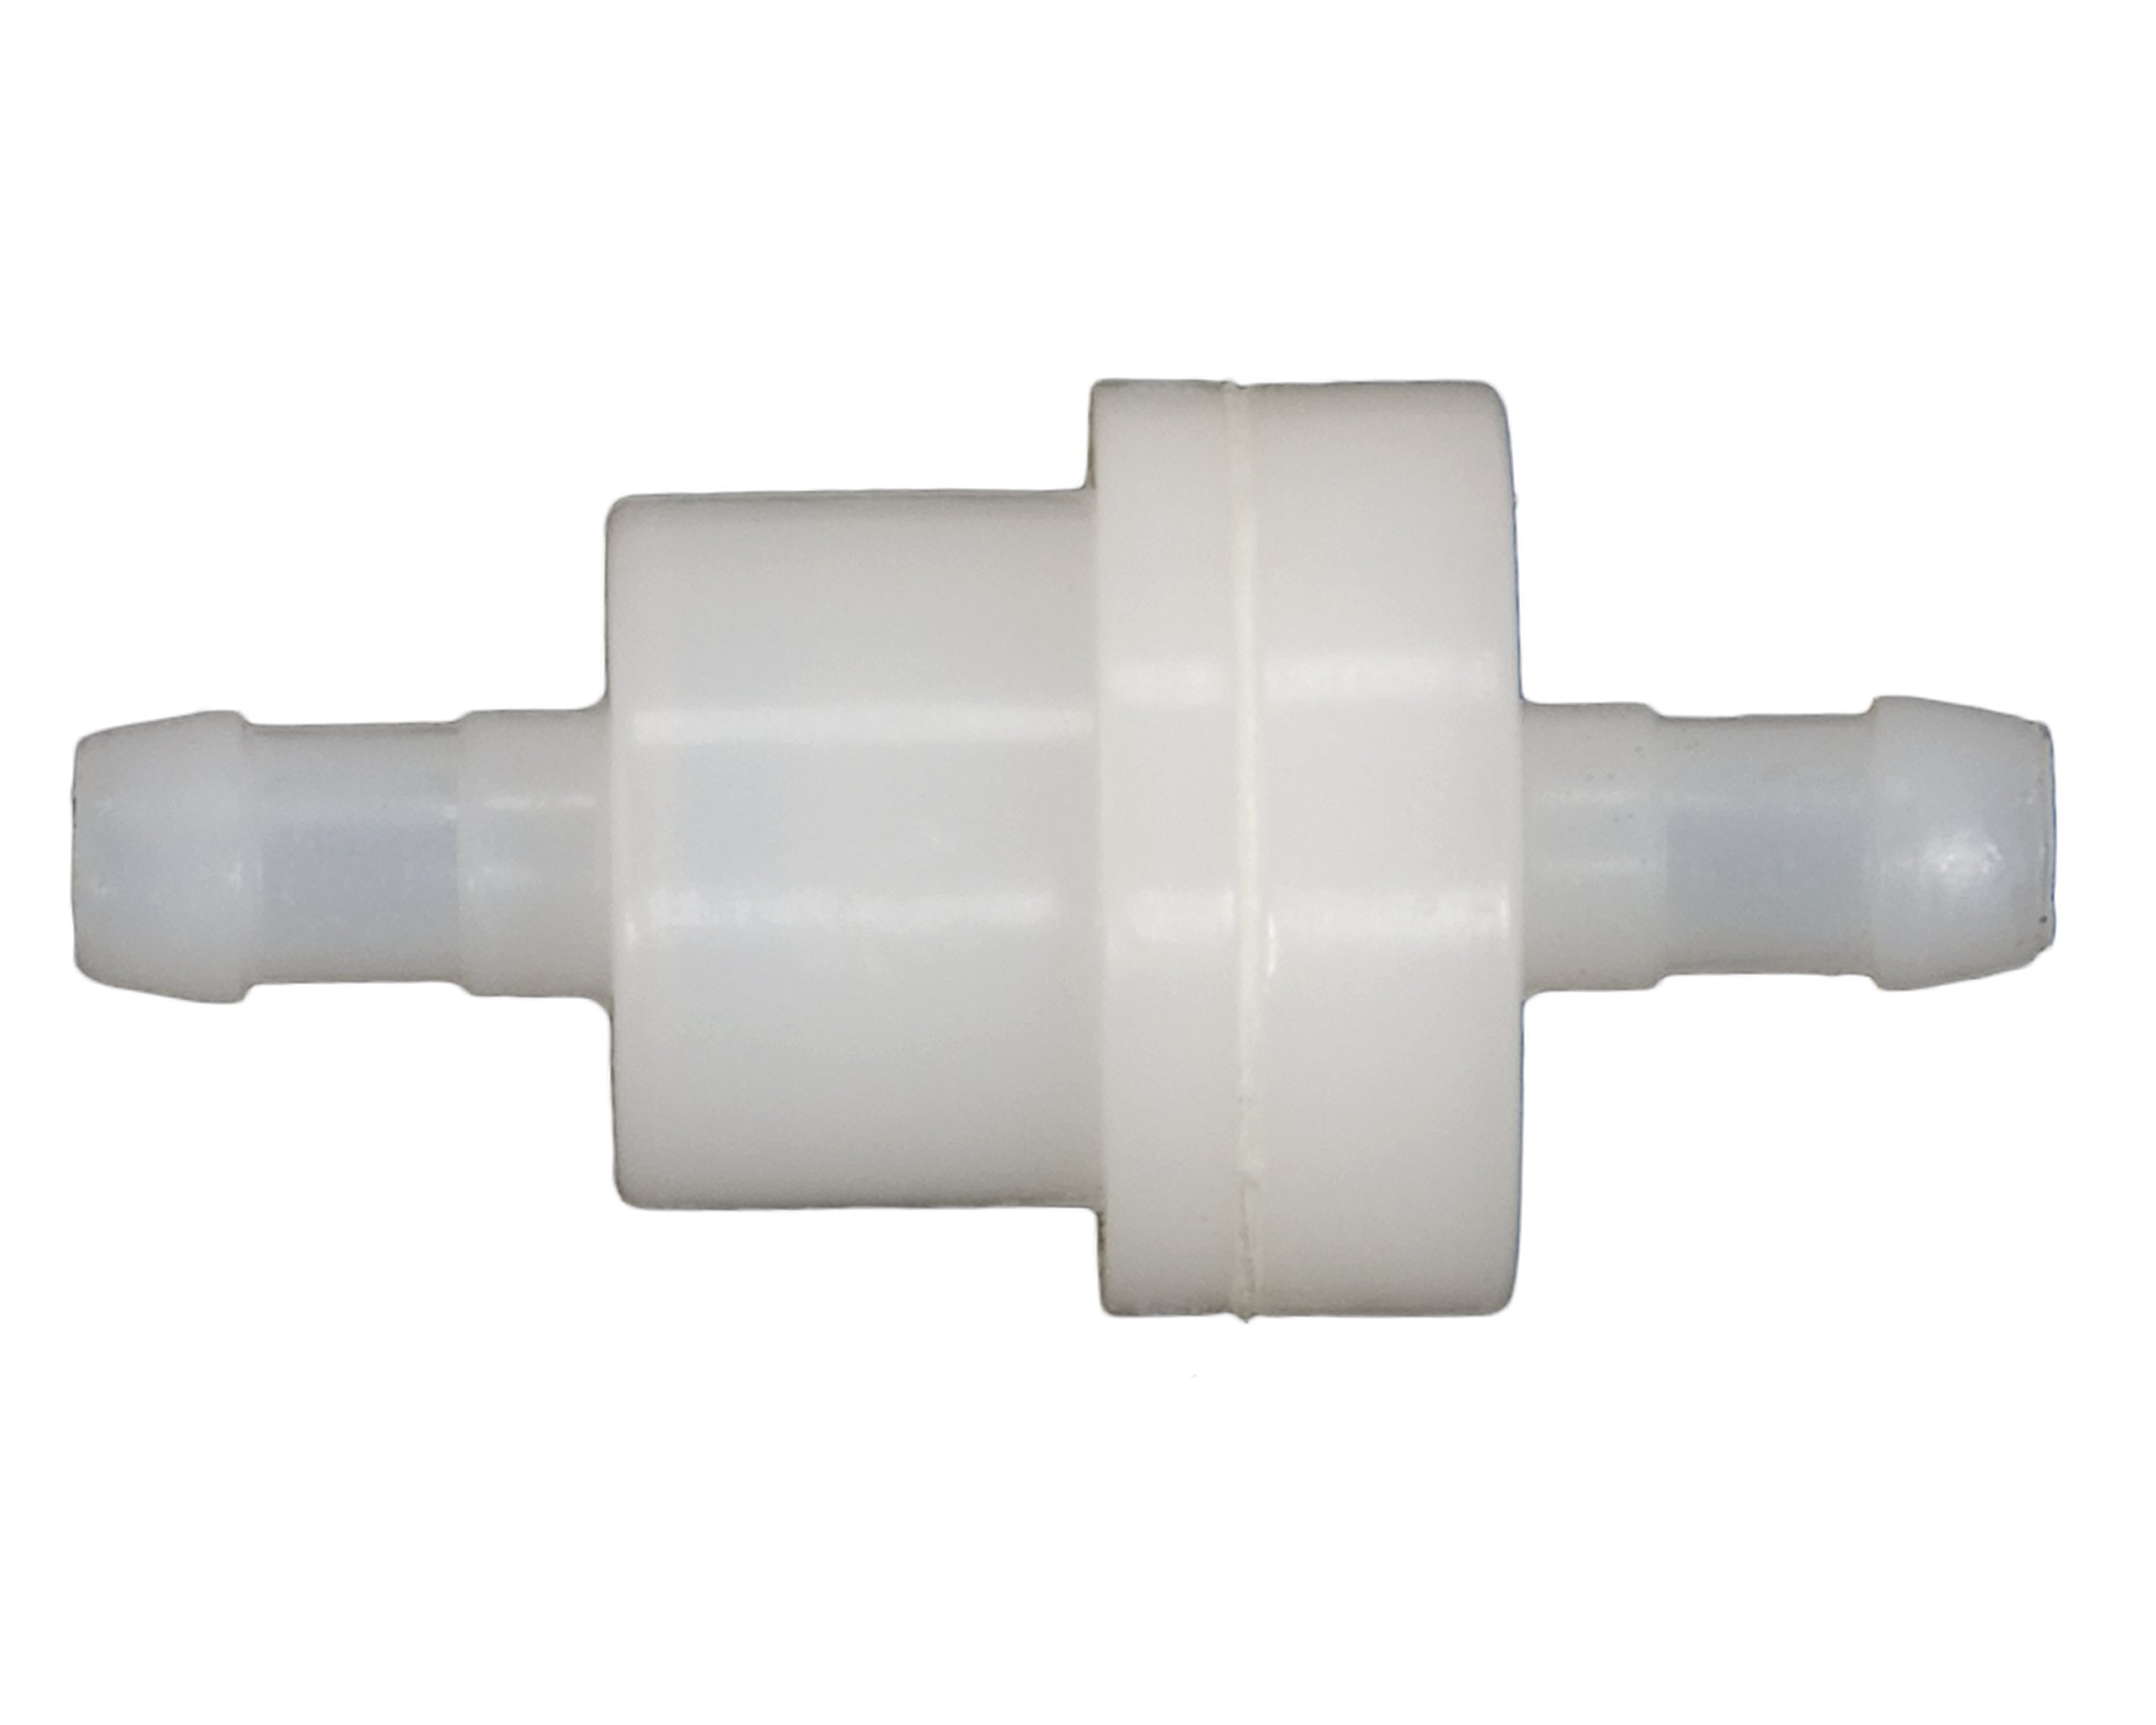 Sierra 18-7713 Inline Fuel Filter for Mercury/Mariner and Yamaha Marine Engines